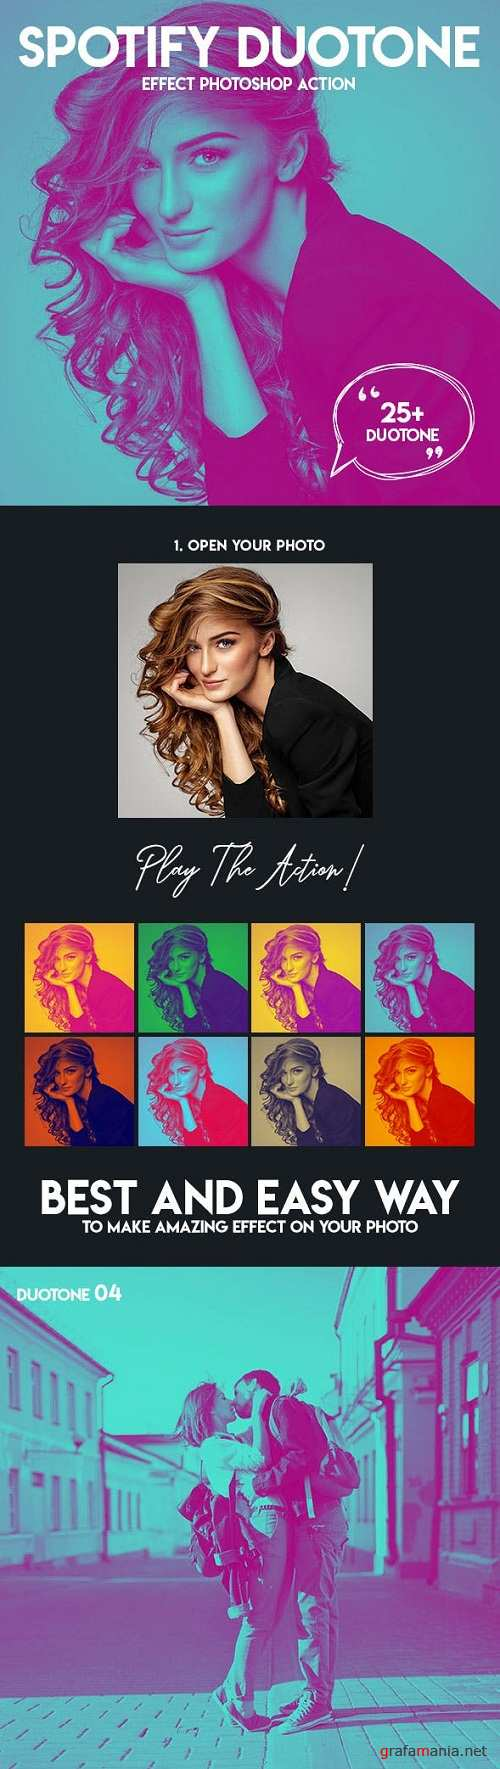 Spotify Duotone Effect Photoshop Action 23016022